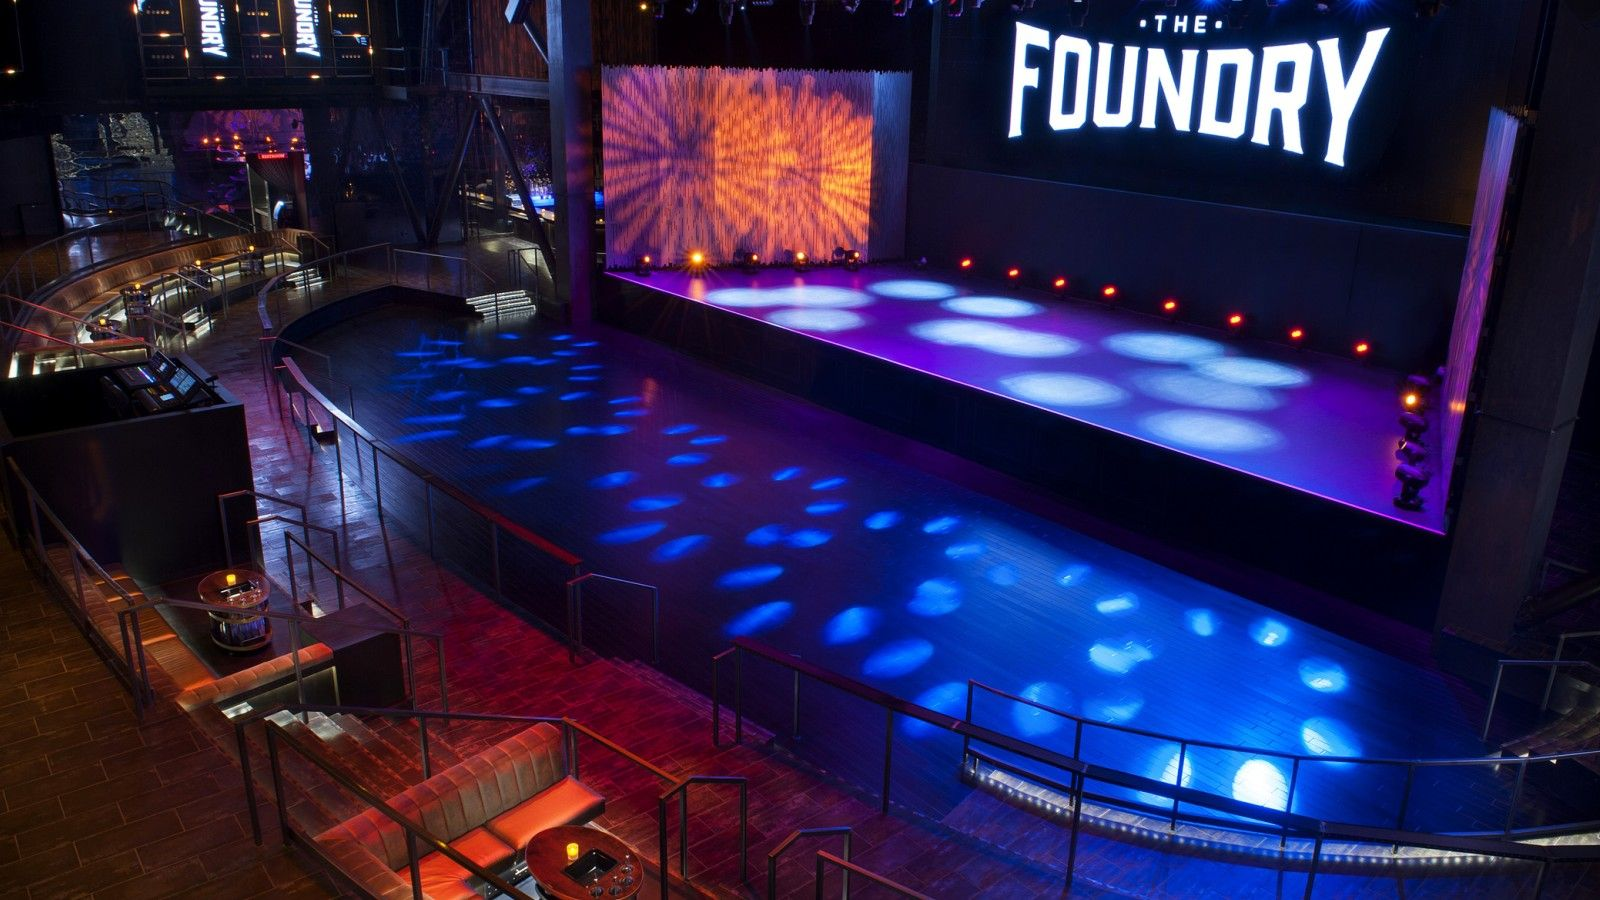 The Foundry - Social Events at W Las Vegas